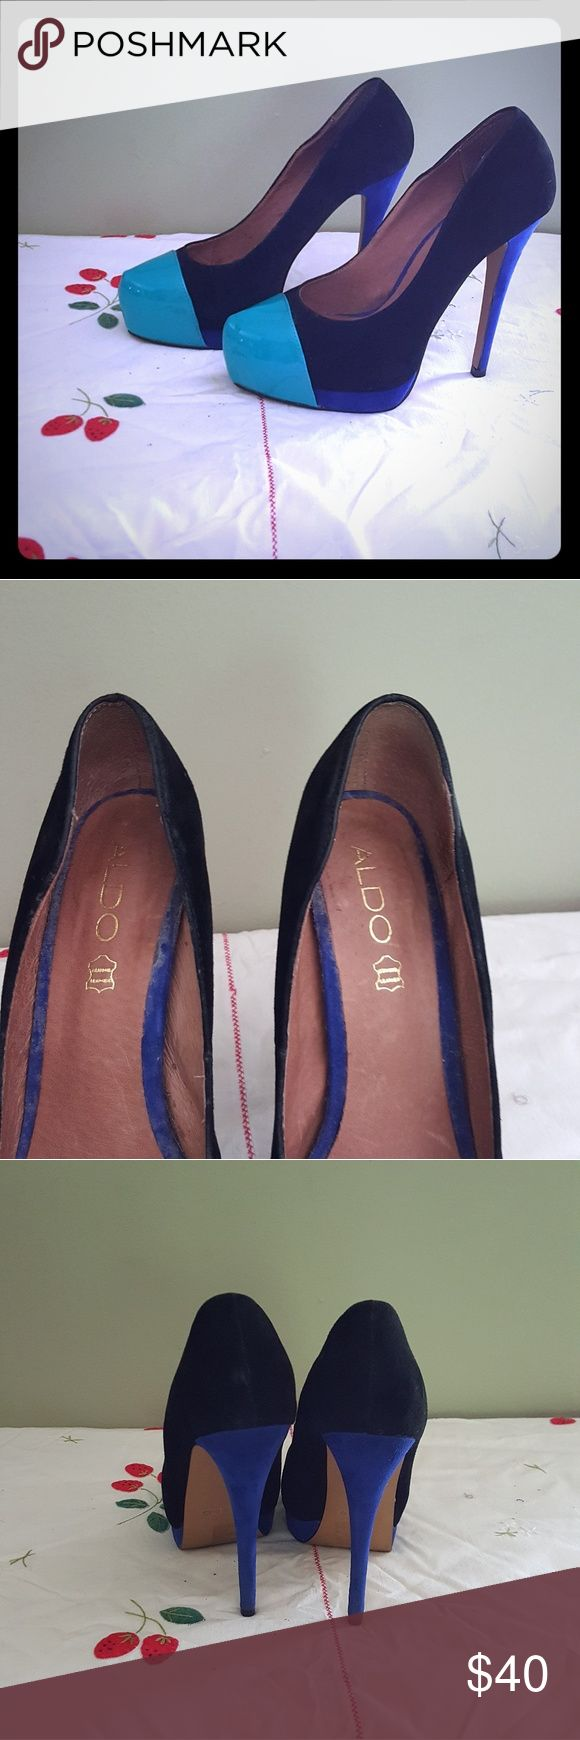 """Aldo ABRIANNNA Heels Beautiful multi color suede heels with patent leather toe. Shoe has a turquoise tip, black suede base and navy heel. Shoe size is 7 with a 5"""" heel. Condition of shoe is excellent with no damage. Aldo Shoes Heels"""